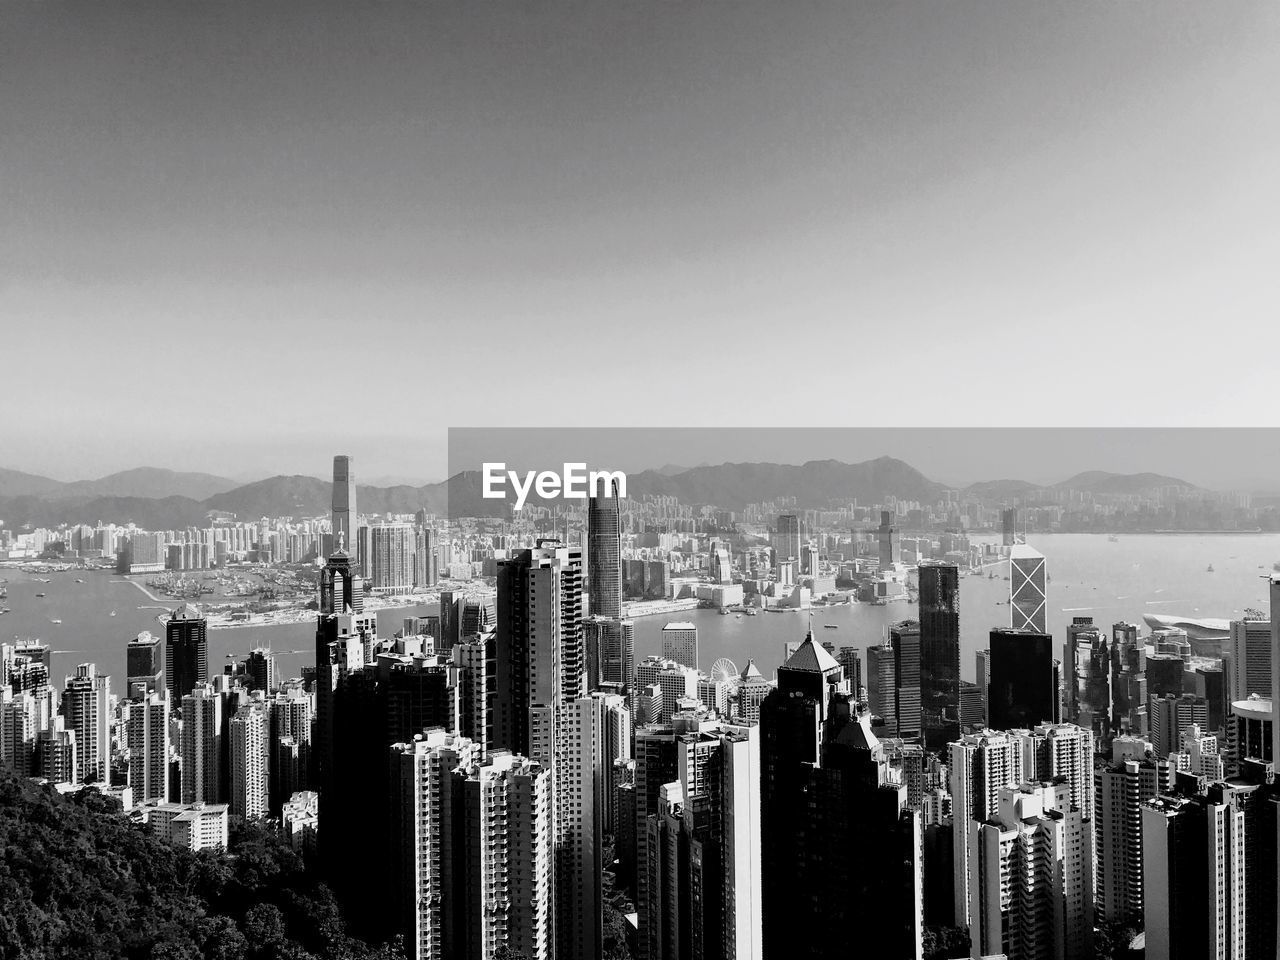 cityscape, skyscraper, architecture, city, crowded, mountain, building exterior, modern, built structure, outdoors, travel destinations, urban skyline, clear sky, day, nature, sky